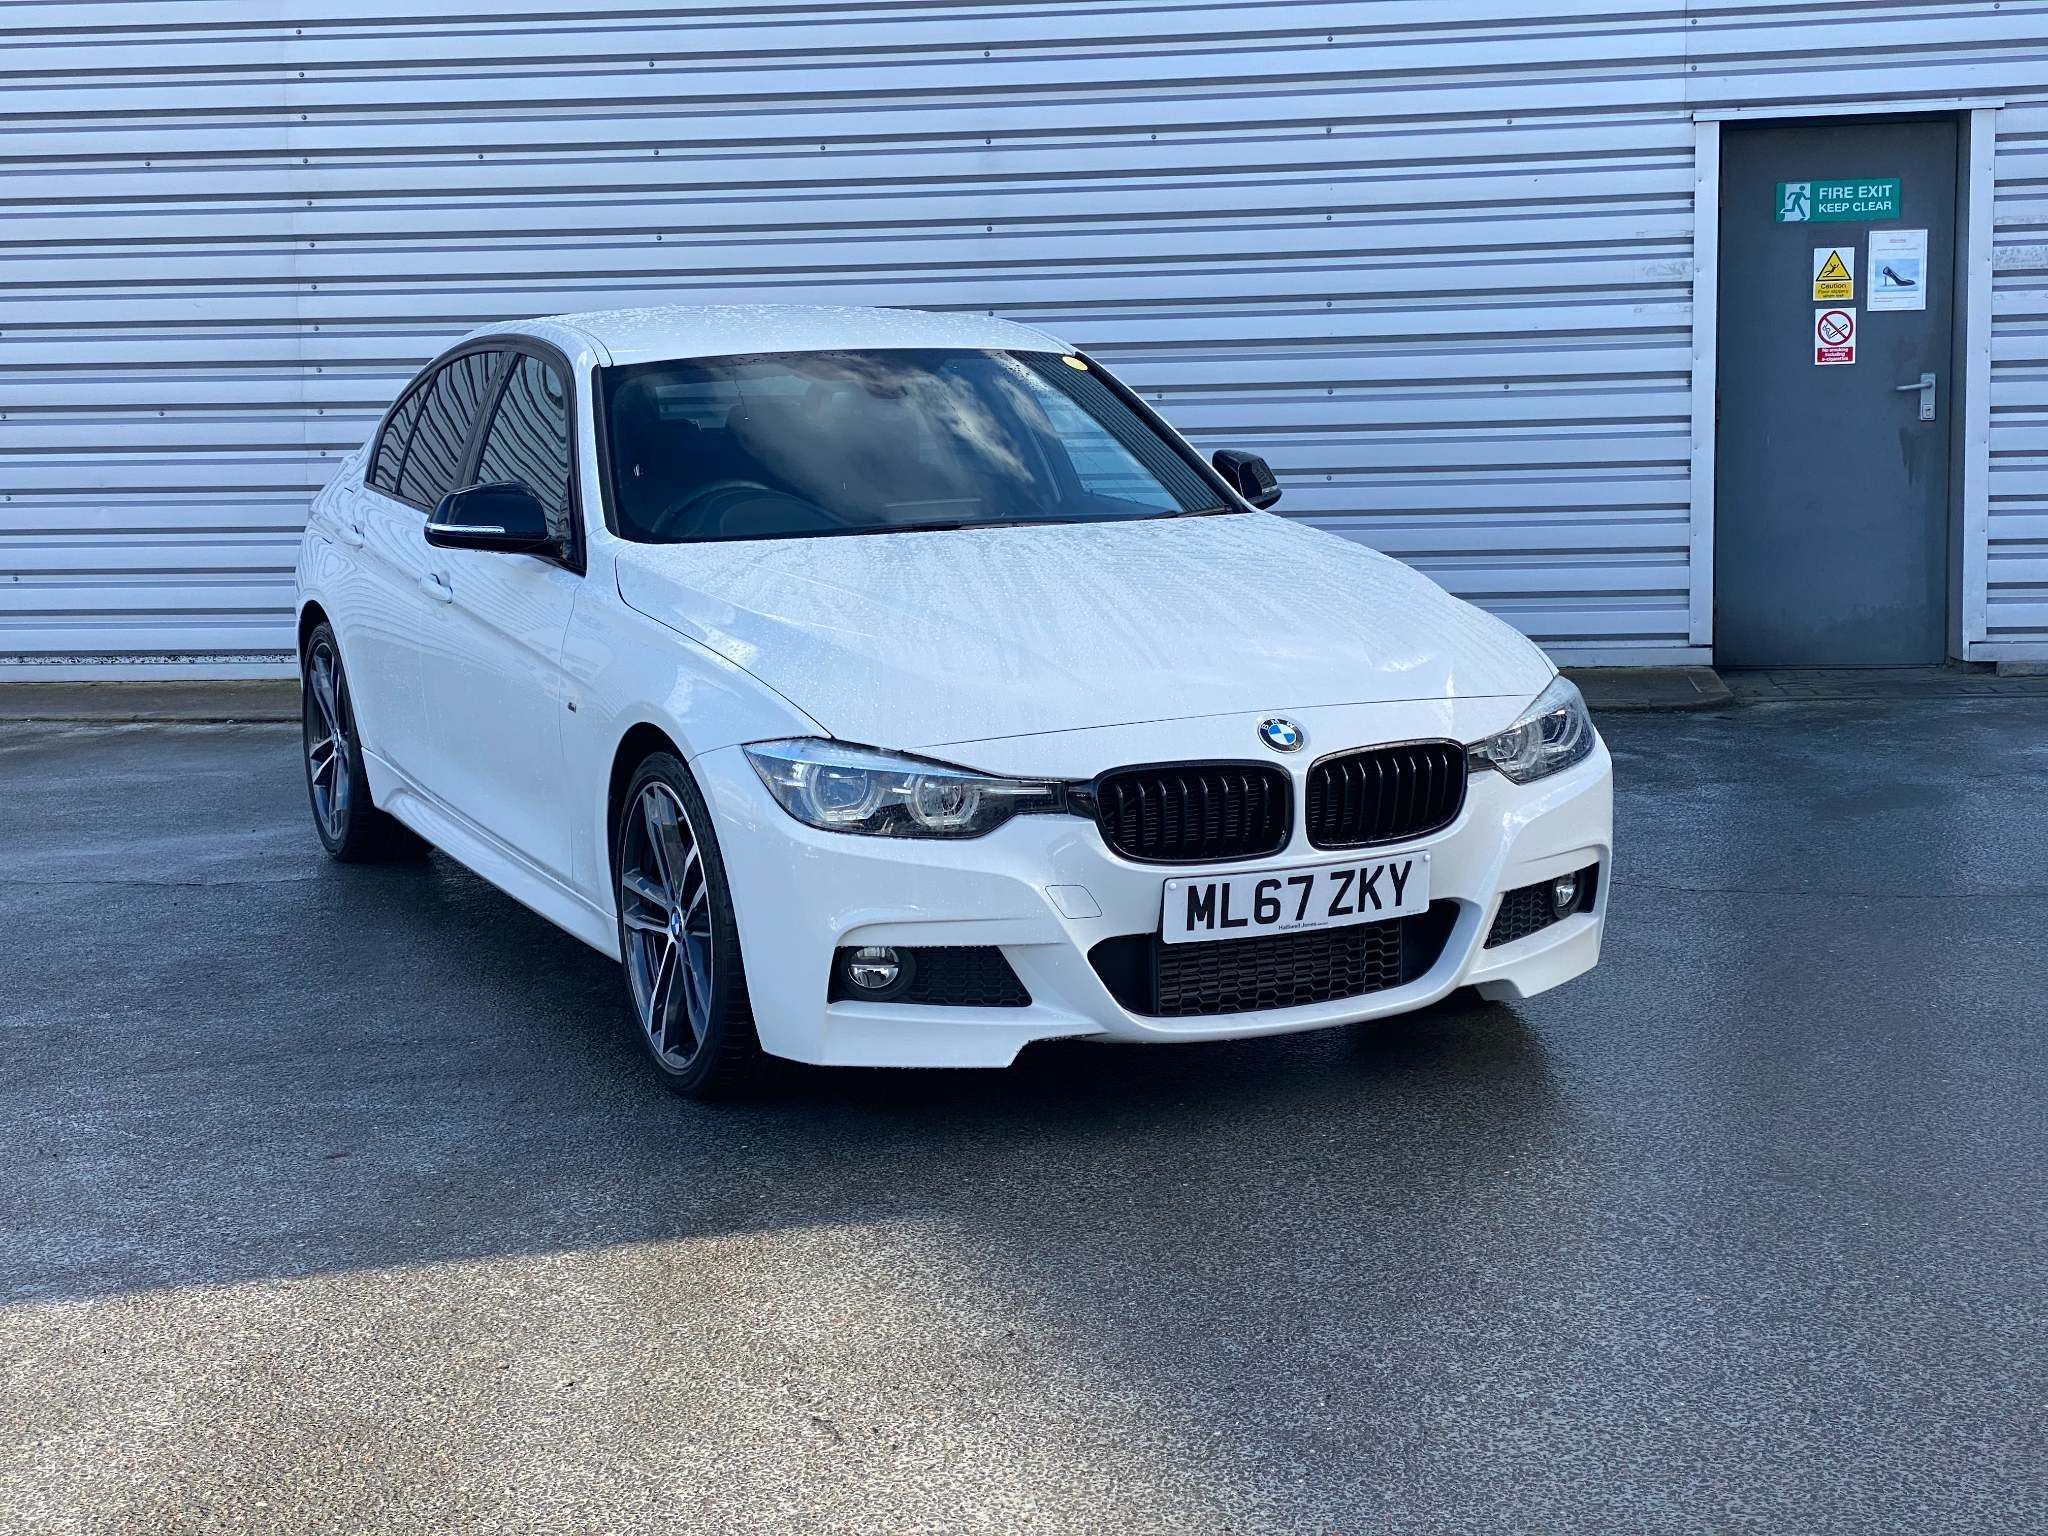 Image 1 - BMW 320d M Sport Shadow Edition Saloon (ML67ZKY)